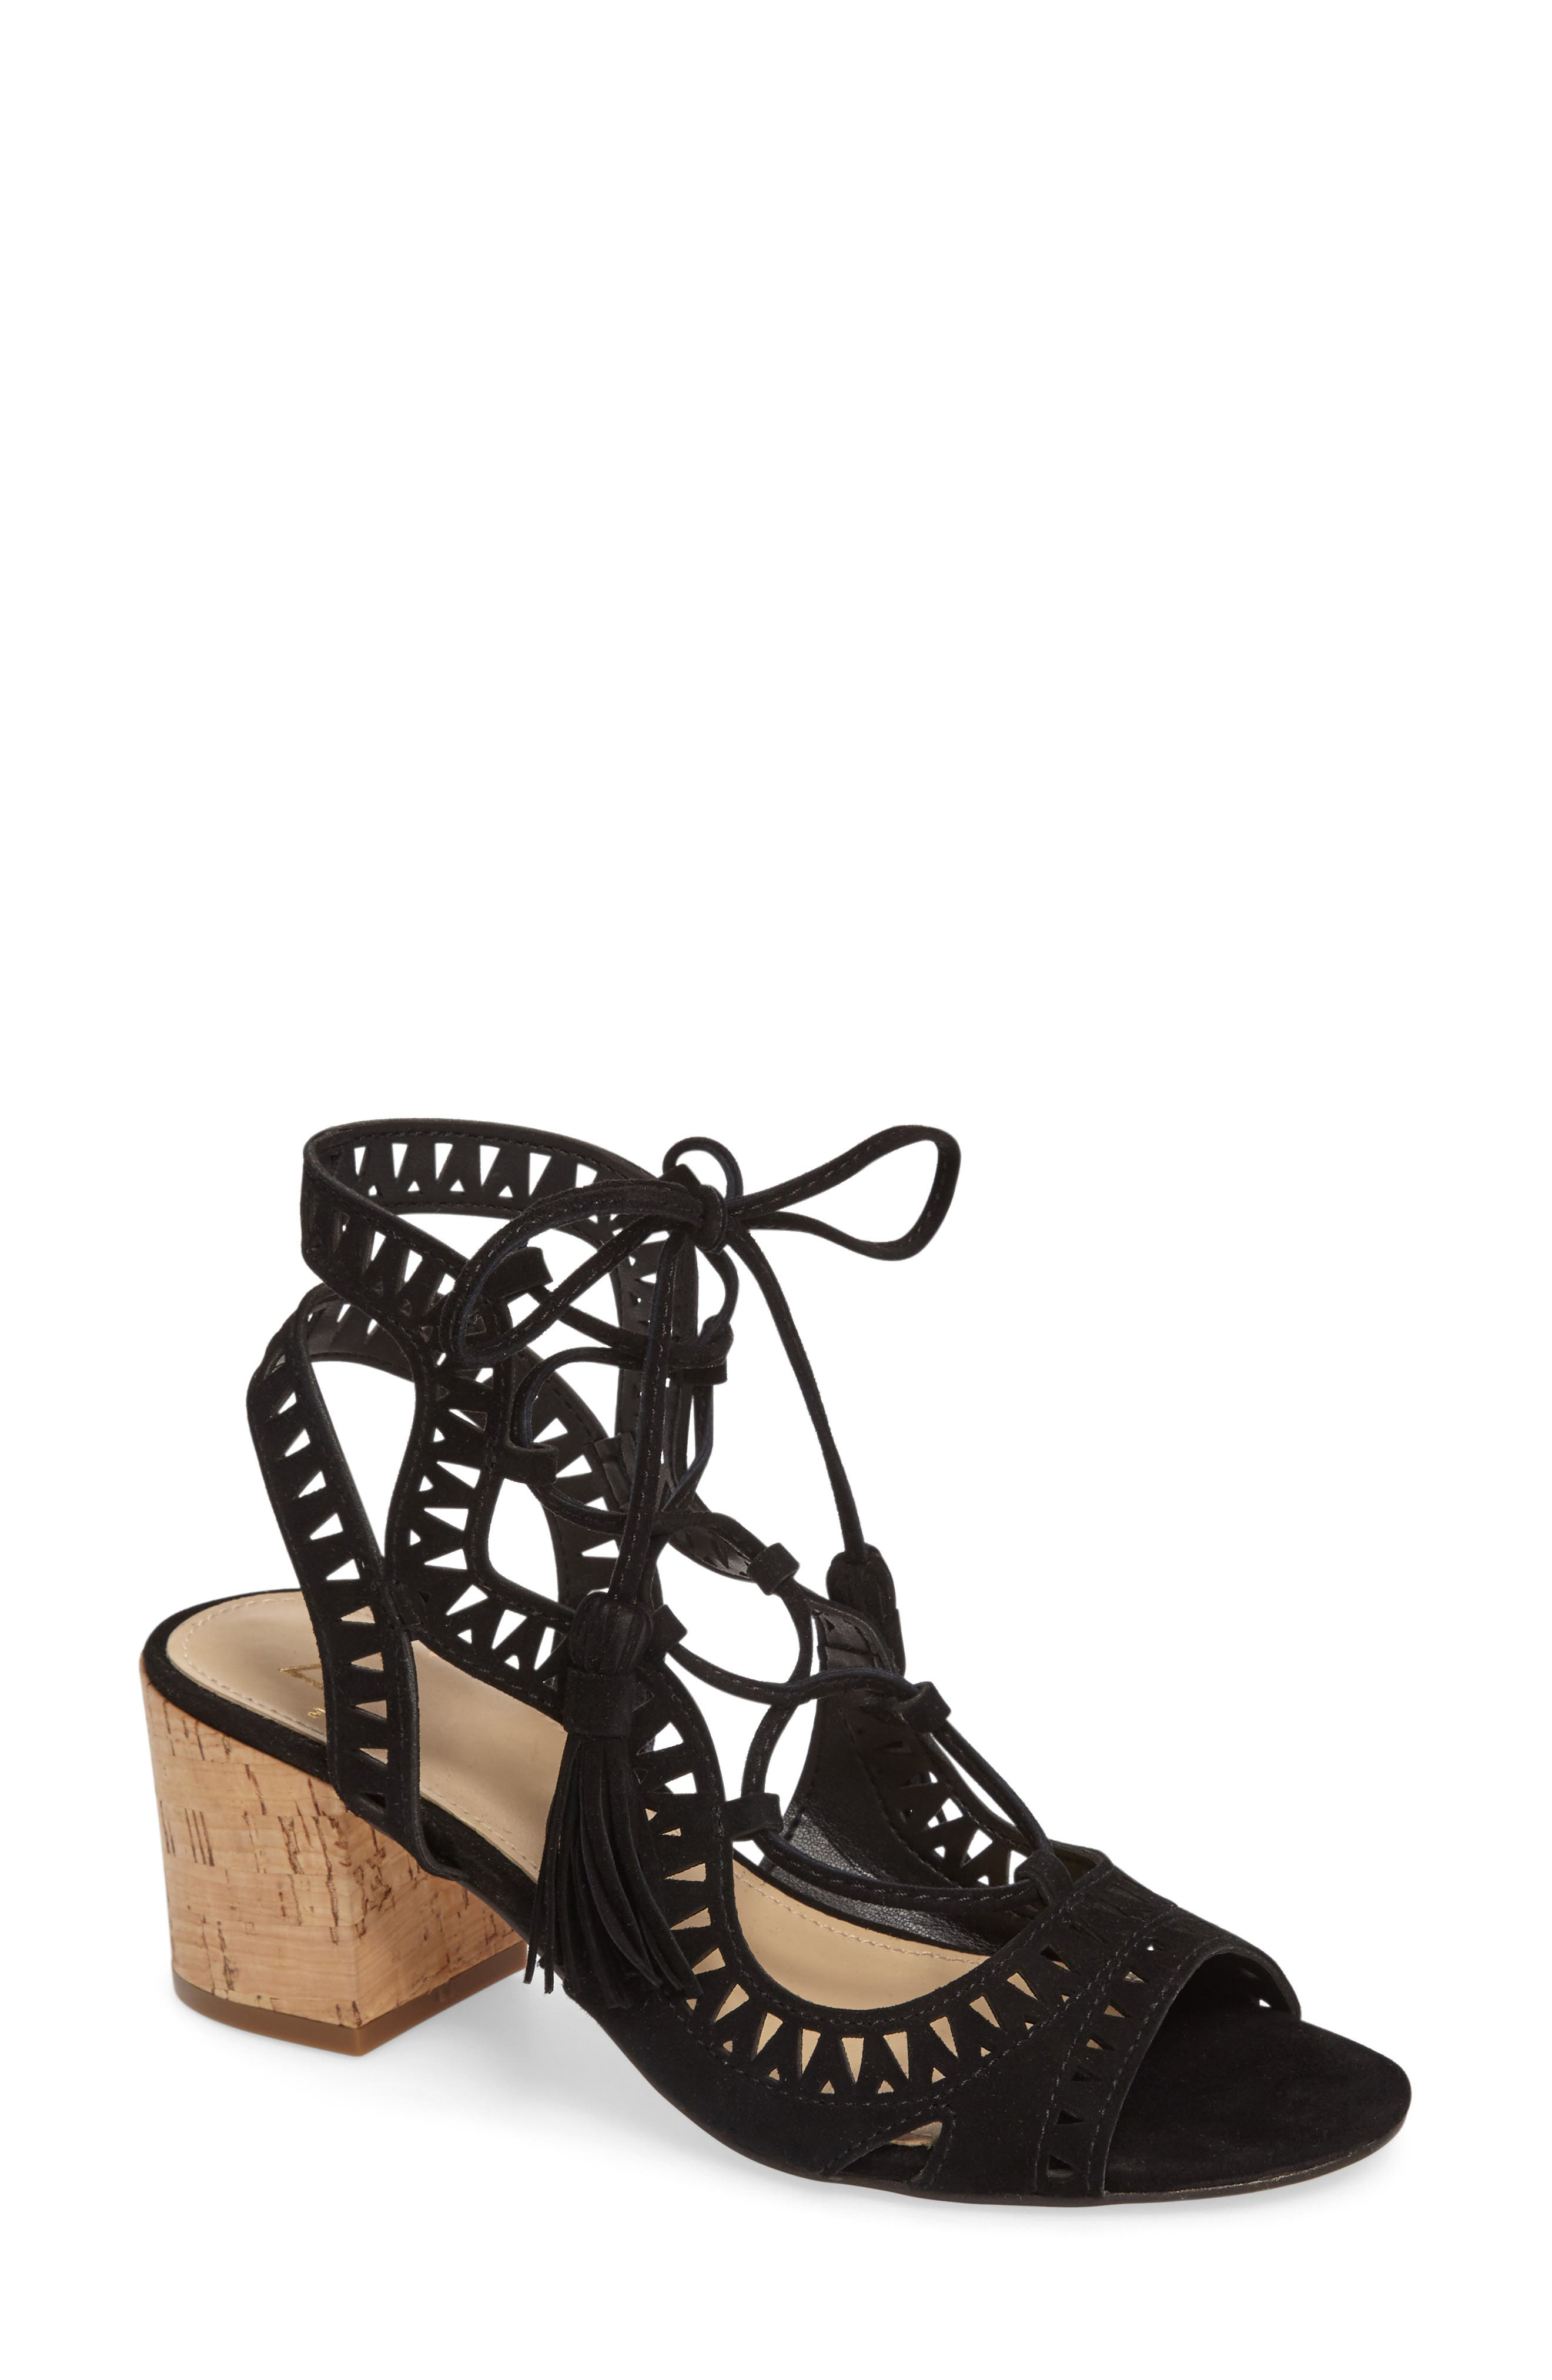 Main Image - Marc Fisher LTD Remone Ghillie Lace Sandal (Women)